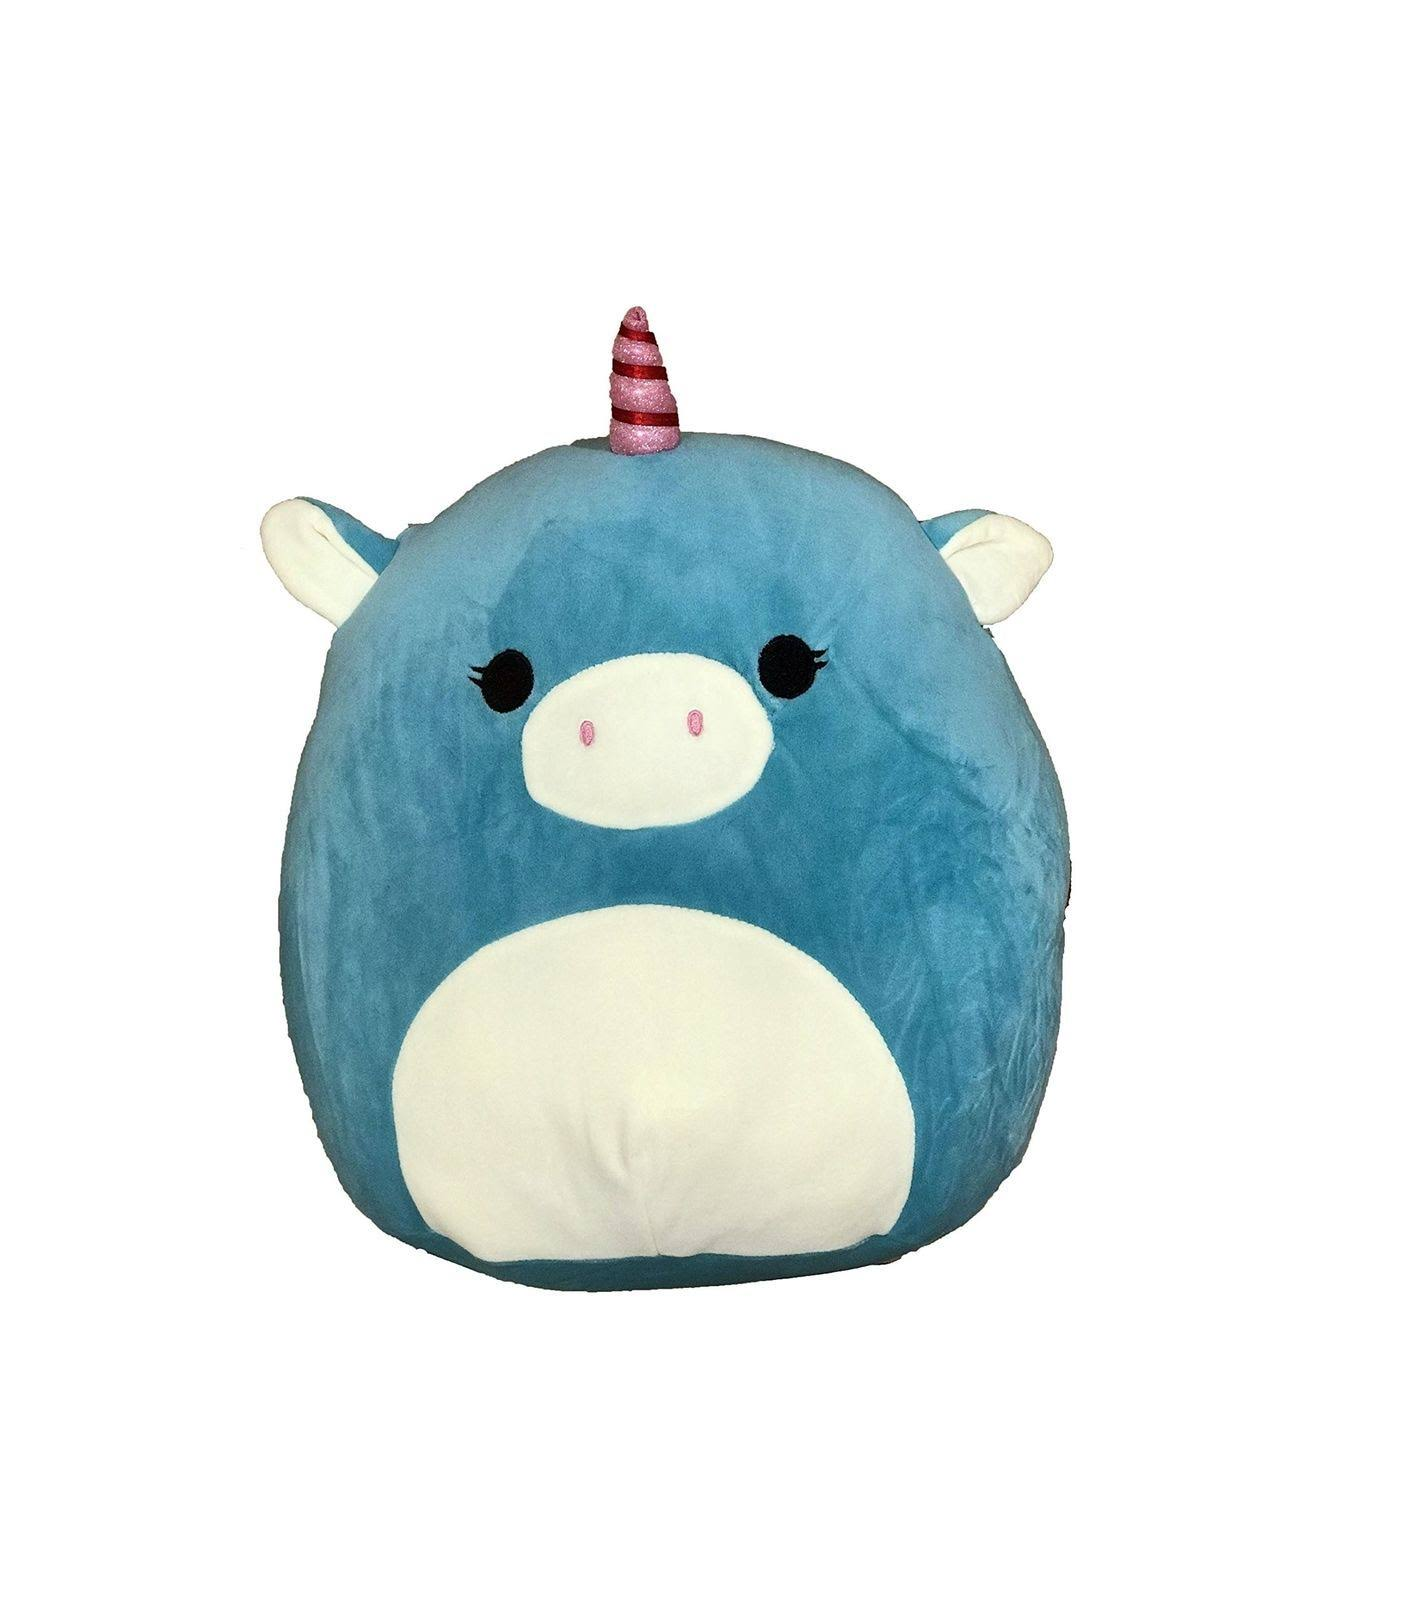 Kellytoy Squishmallow Ace the Unicorn Soft Plush Toy - Turquoise, 8""